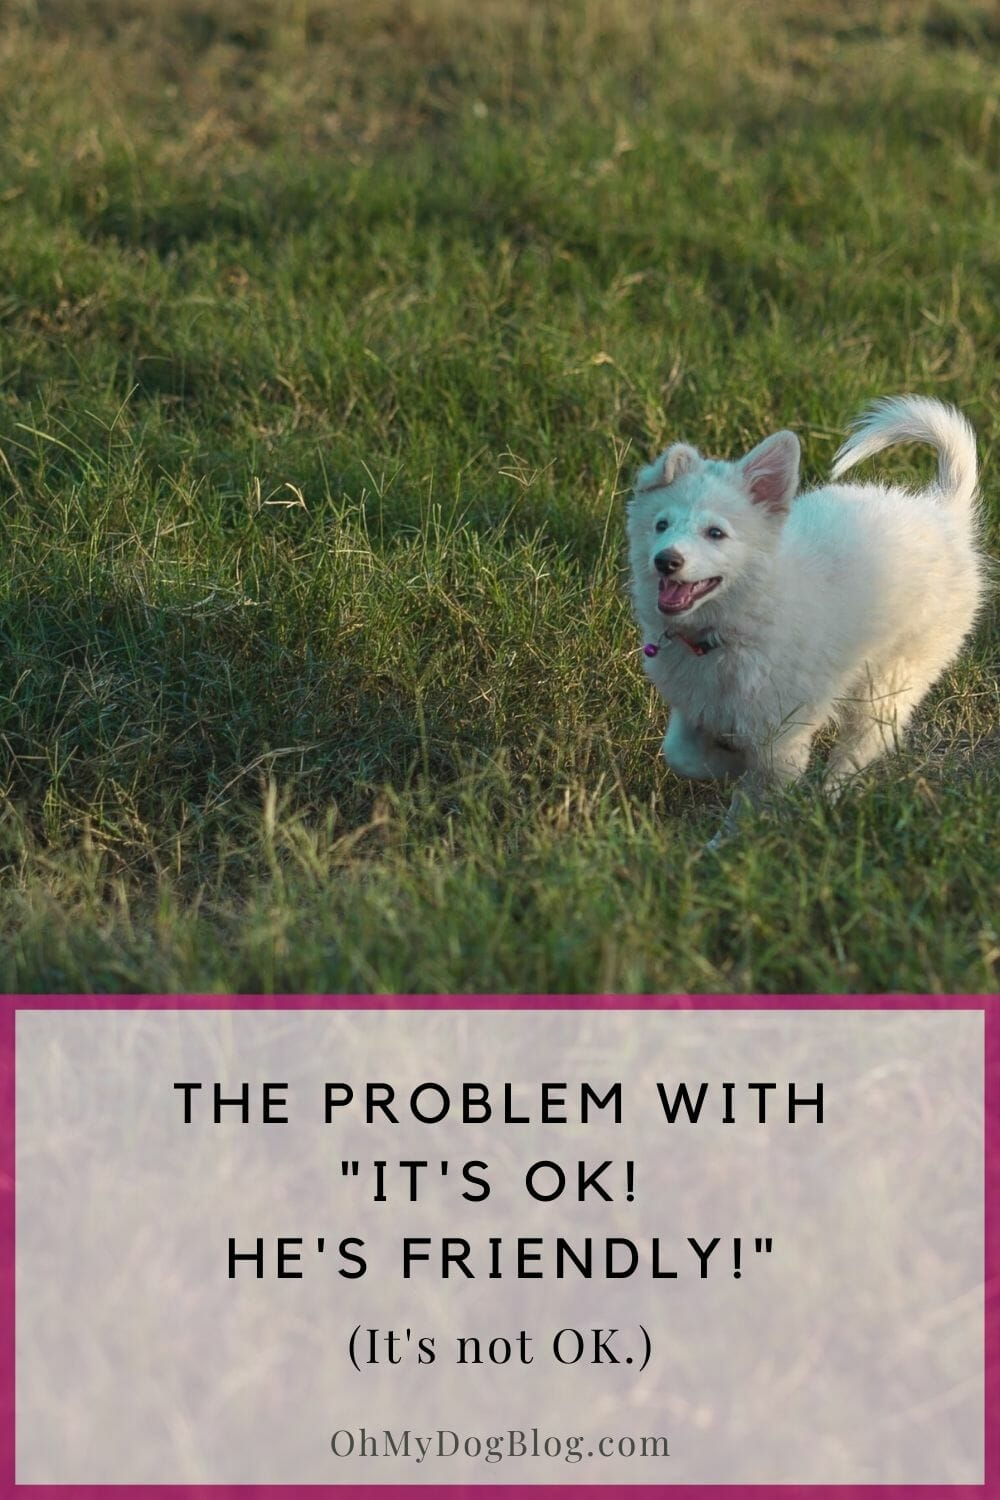 "A white fluffy dog runs through a field of grass. The text overlay says: The problem with, ""It's OK! He's friendly! (It's not OK.)"